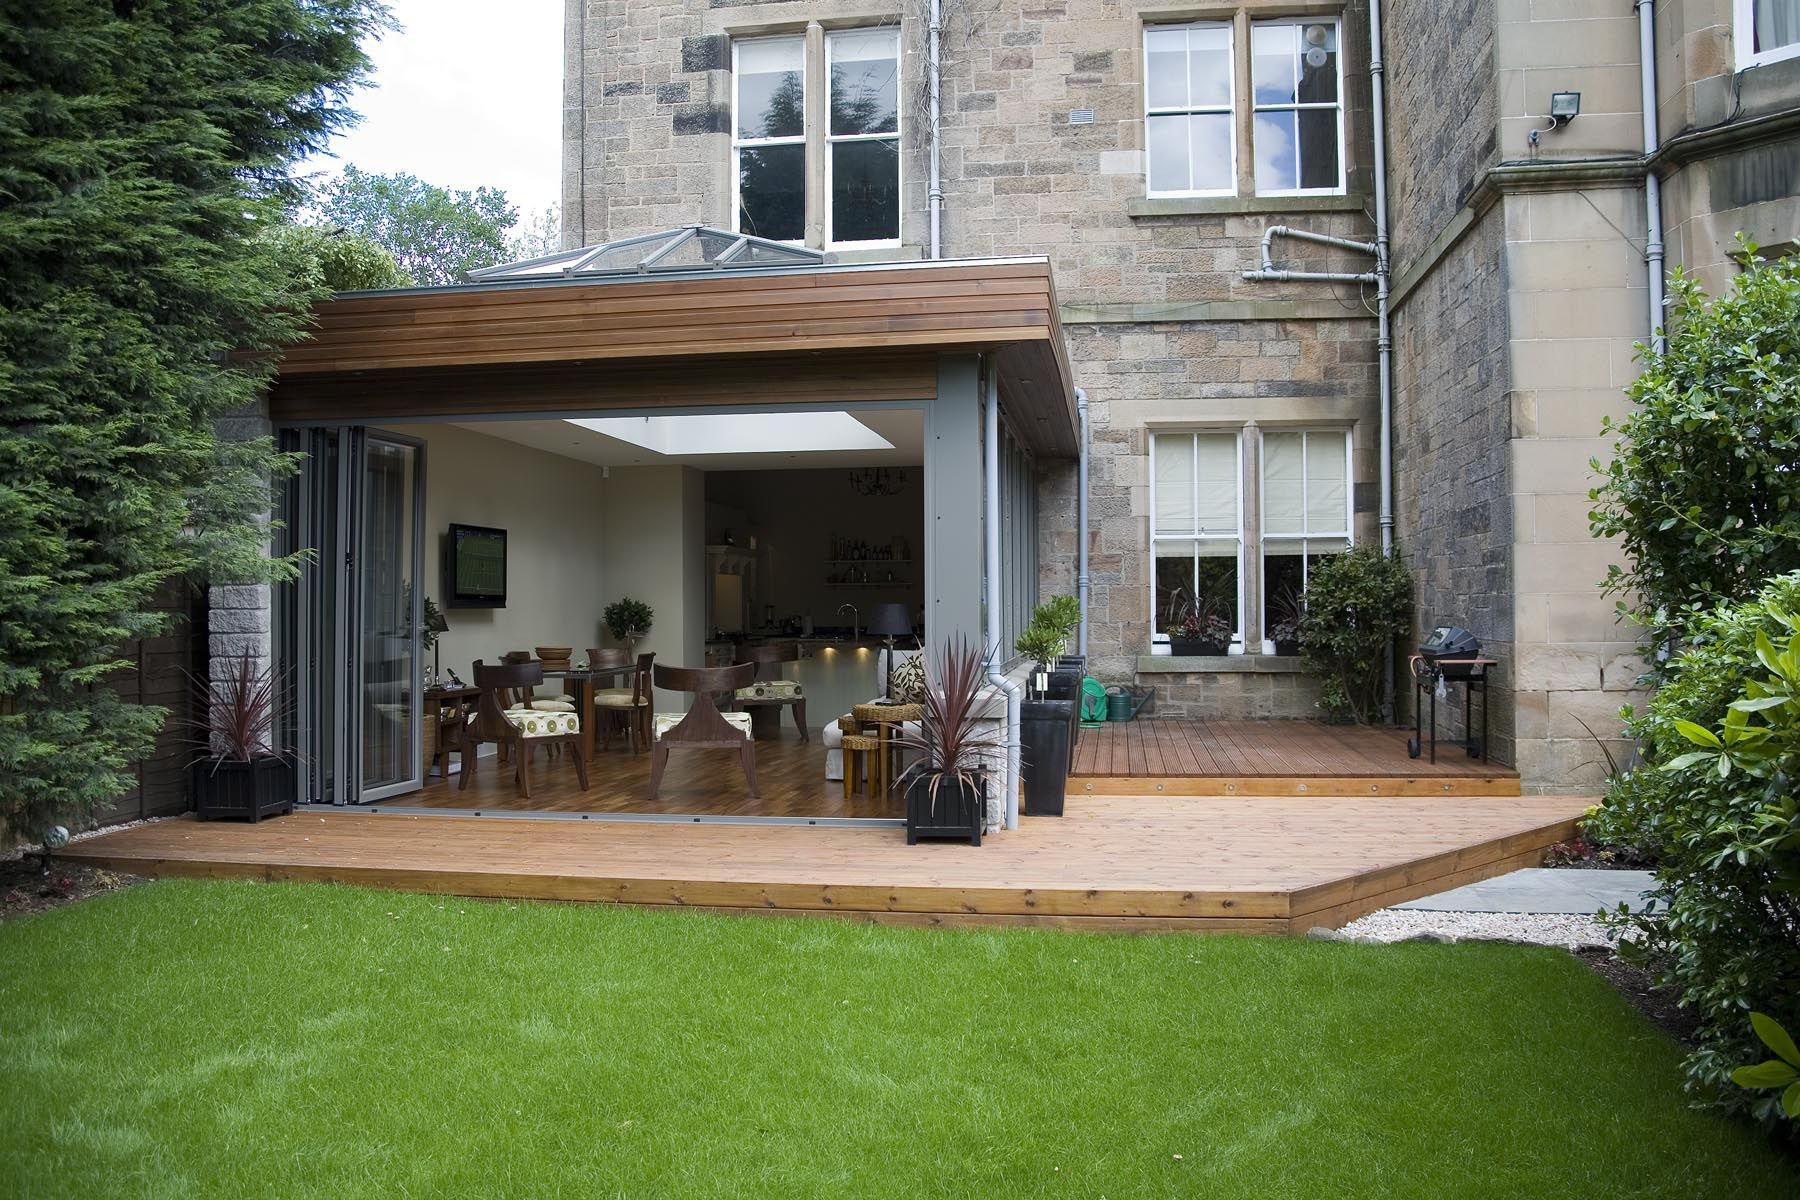 Orangery extension ideas pinterest orangery for Garden house extension